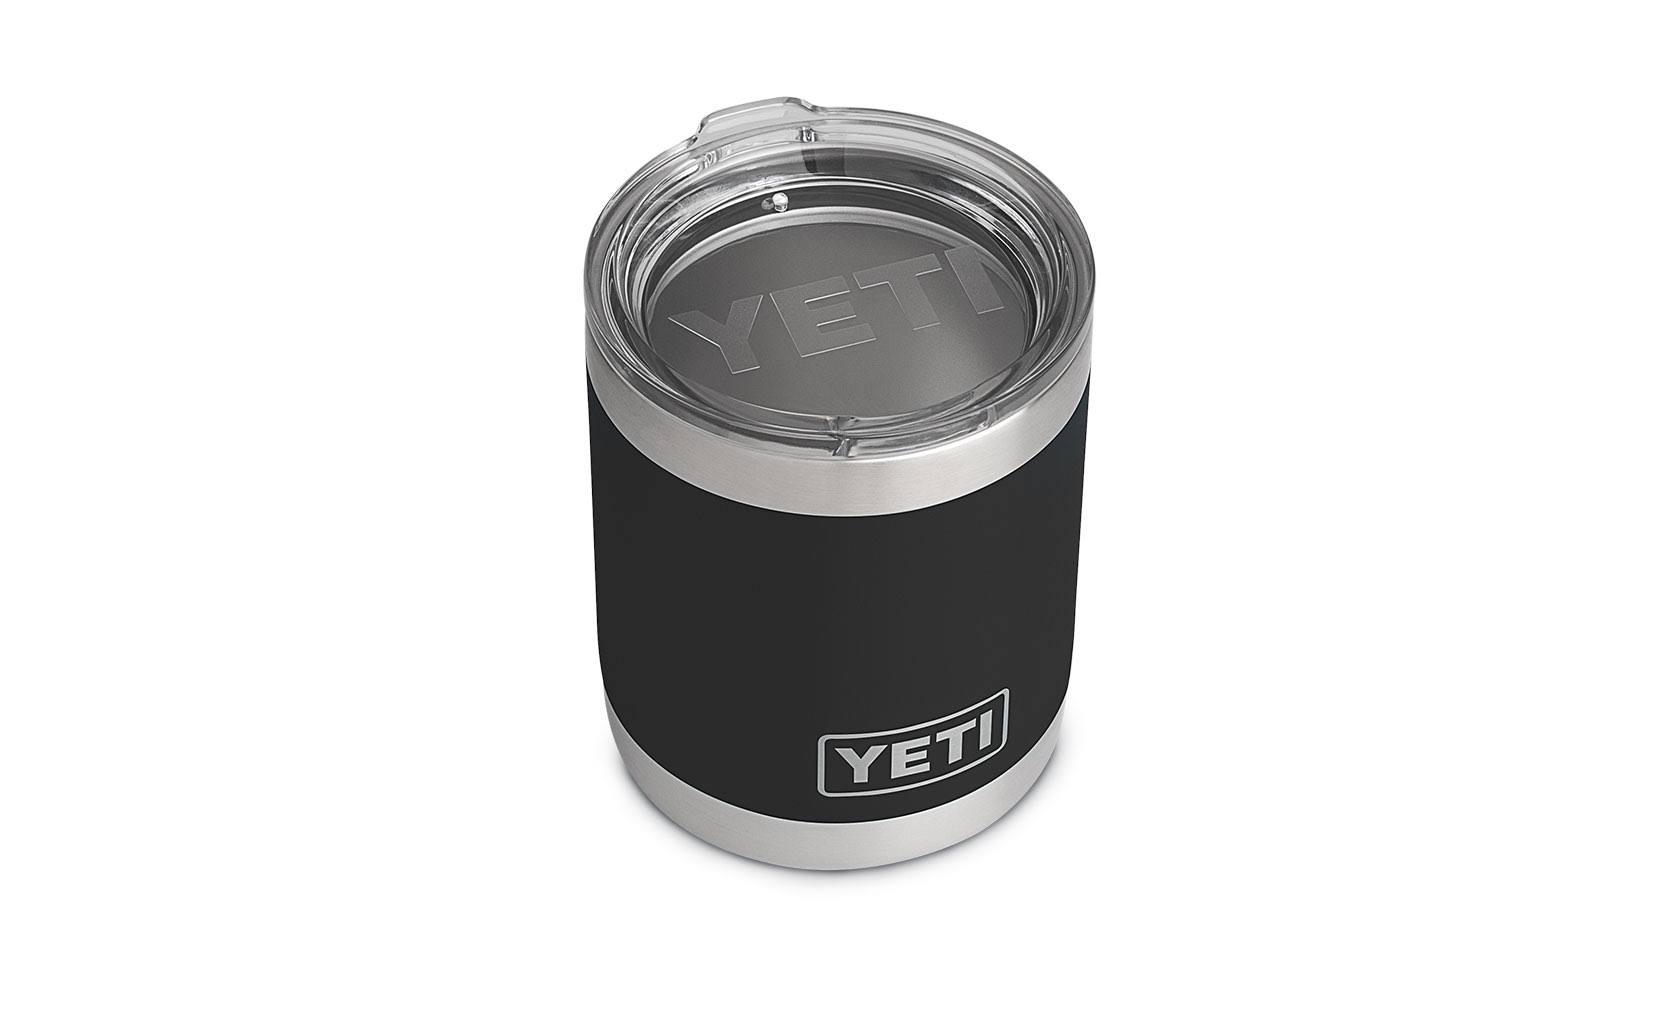 Yeti Rambler Lowball Insulated Stainless Steel Tumbler with Lid - 10oz